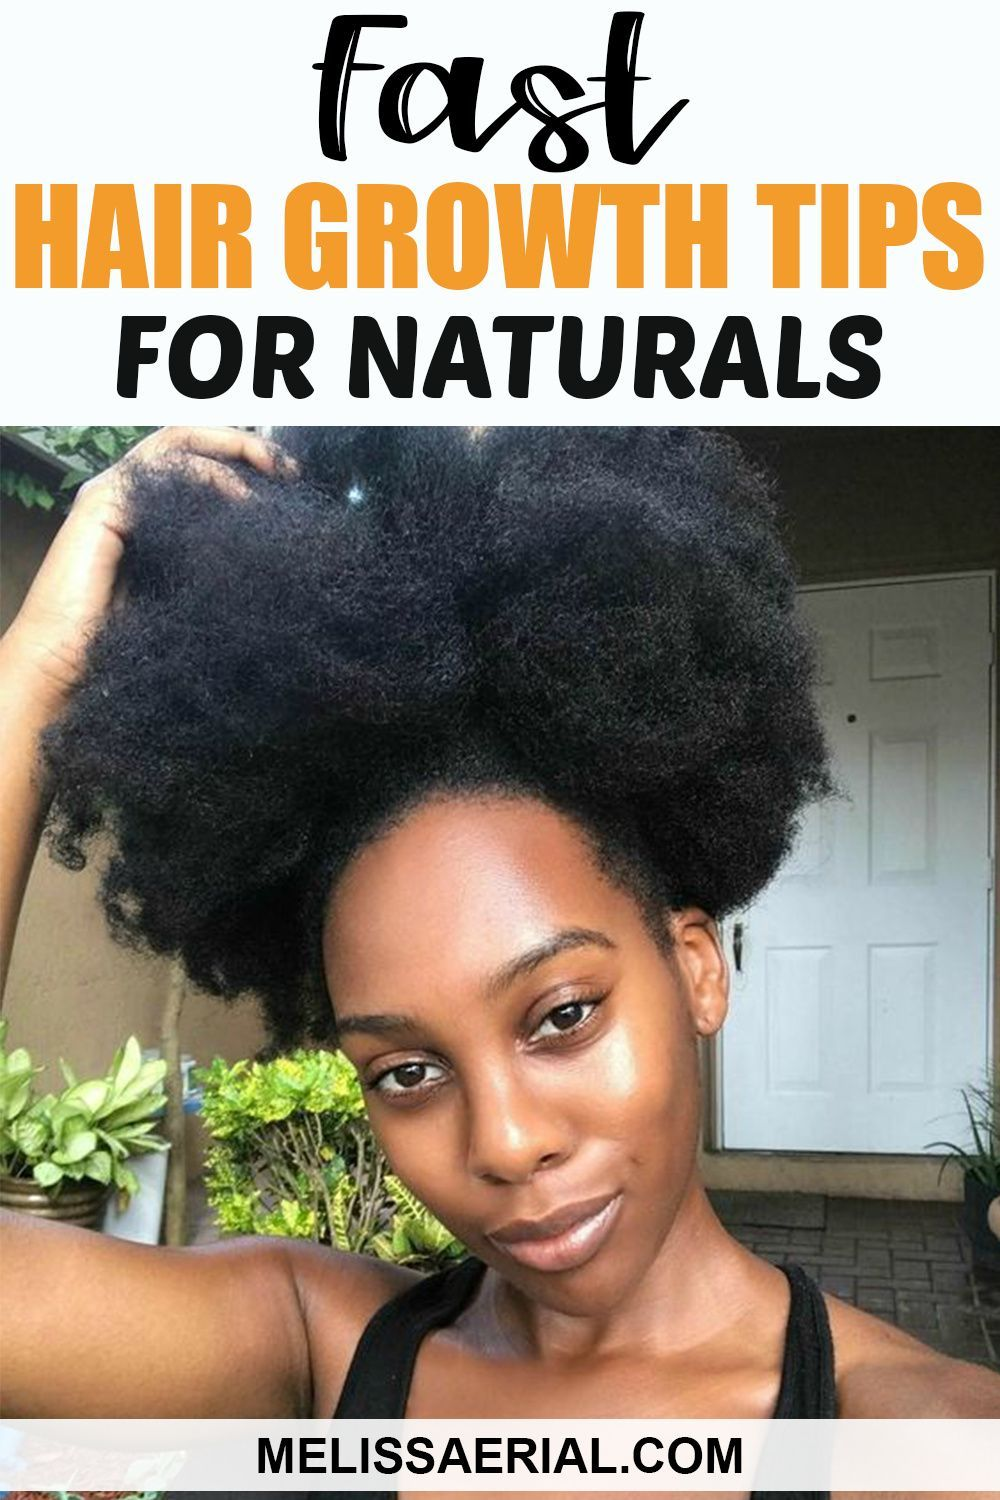 Hair Growth Tips For All Naturals Hair Growth Tips Natural Hair Growth Tips Natural Hair Styles